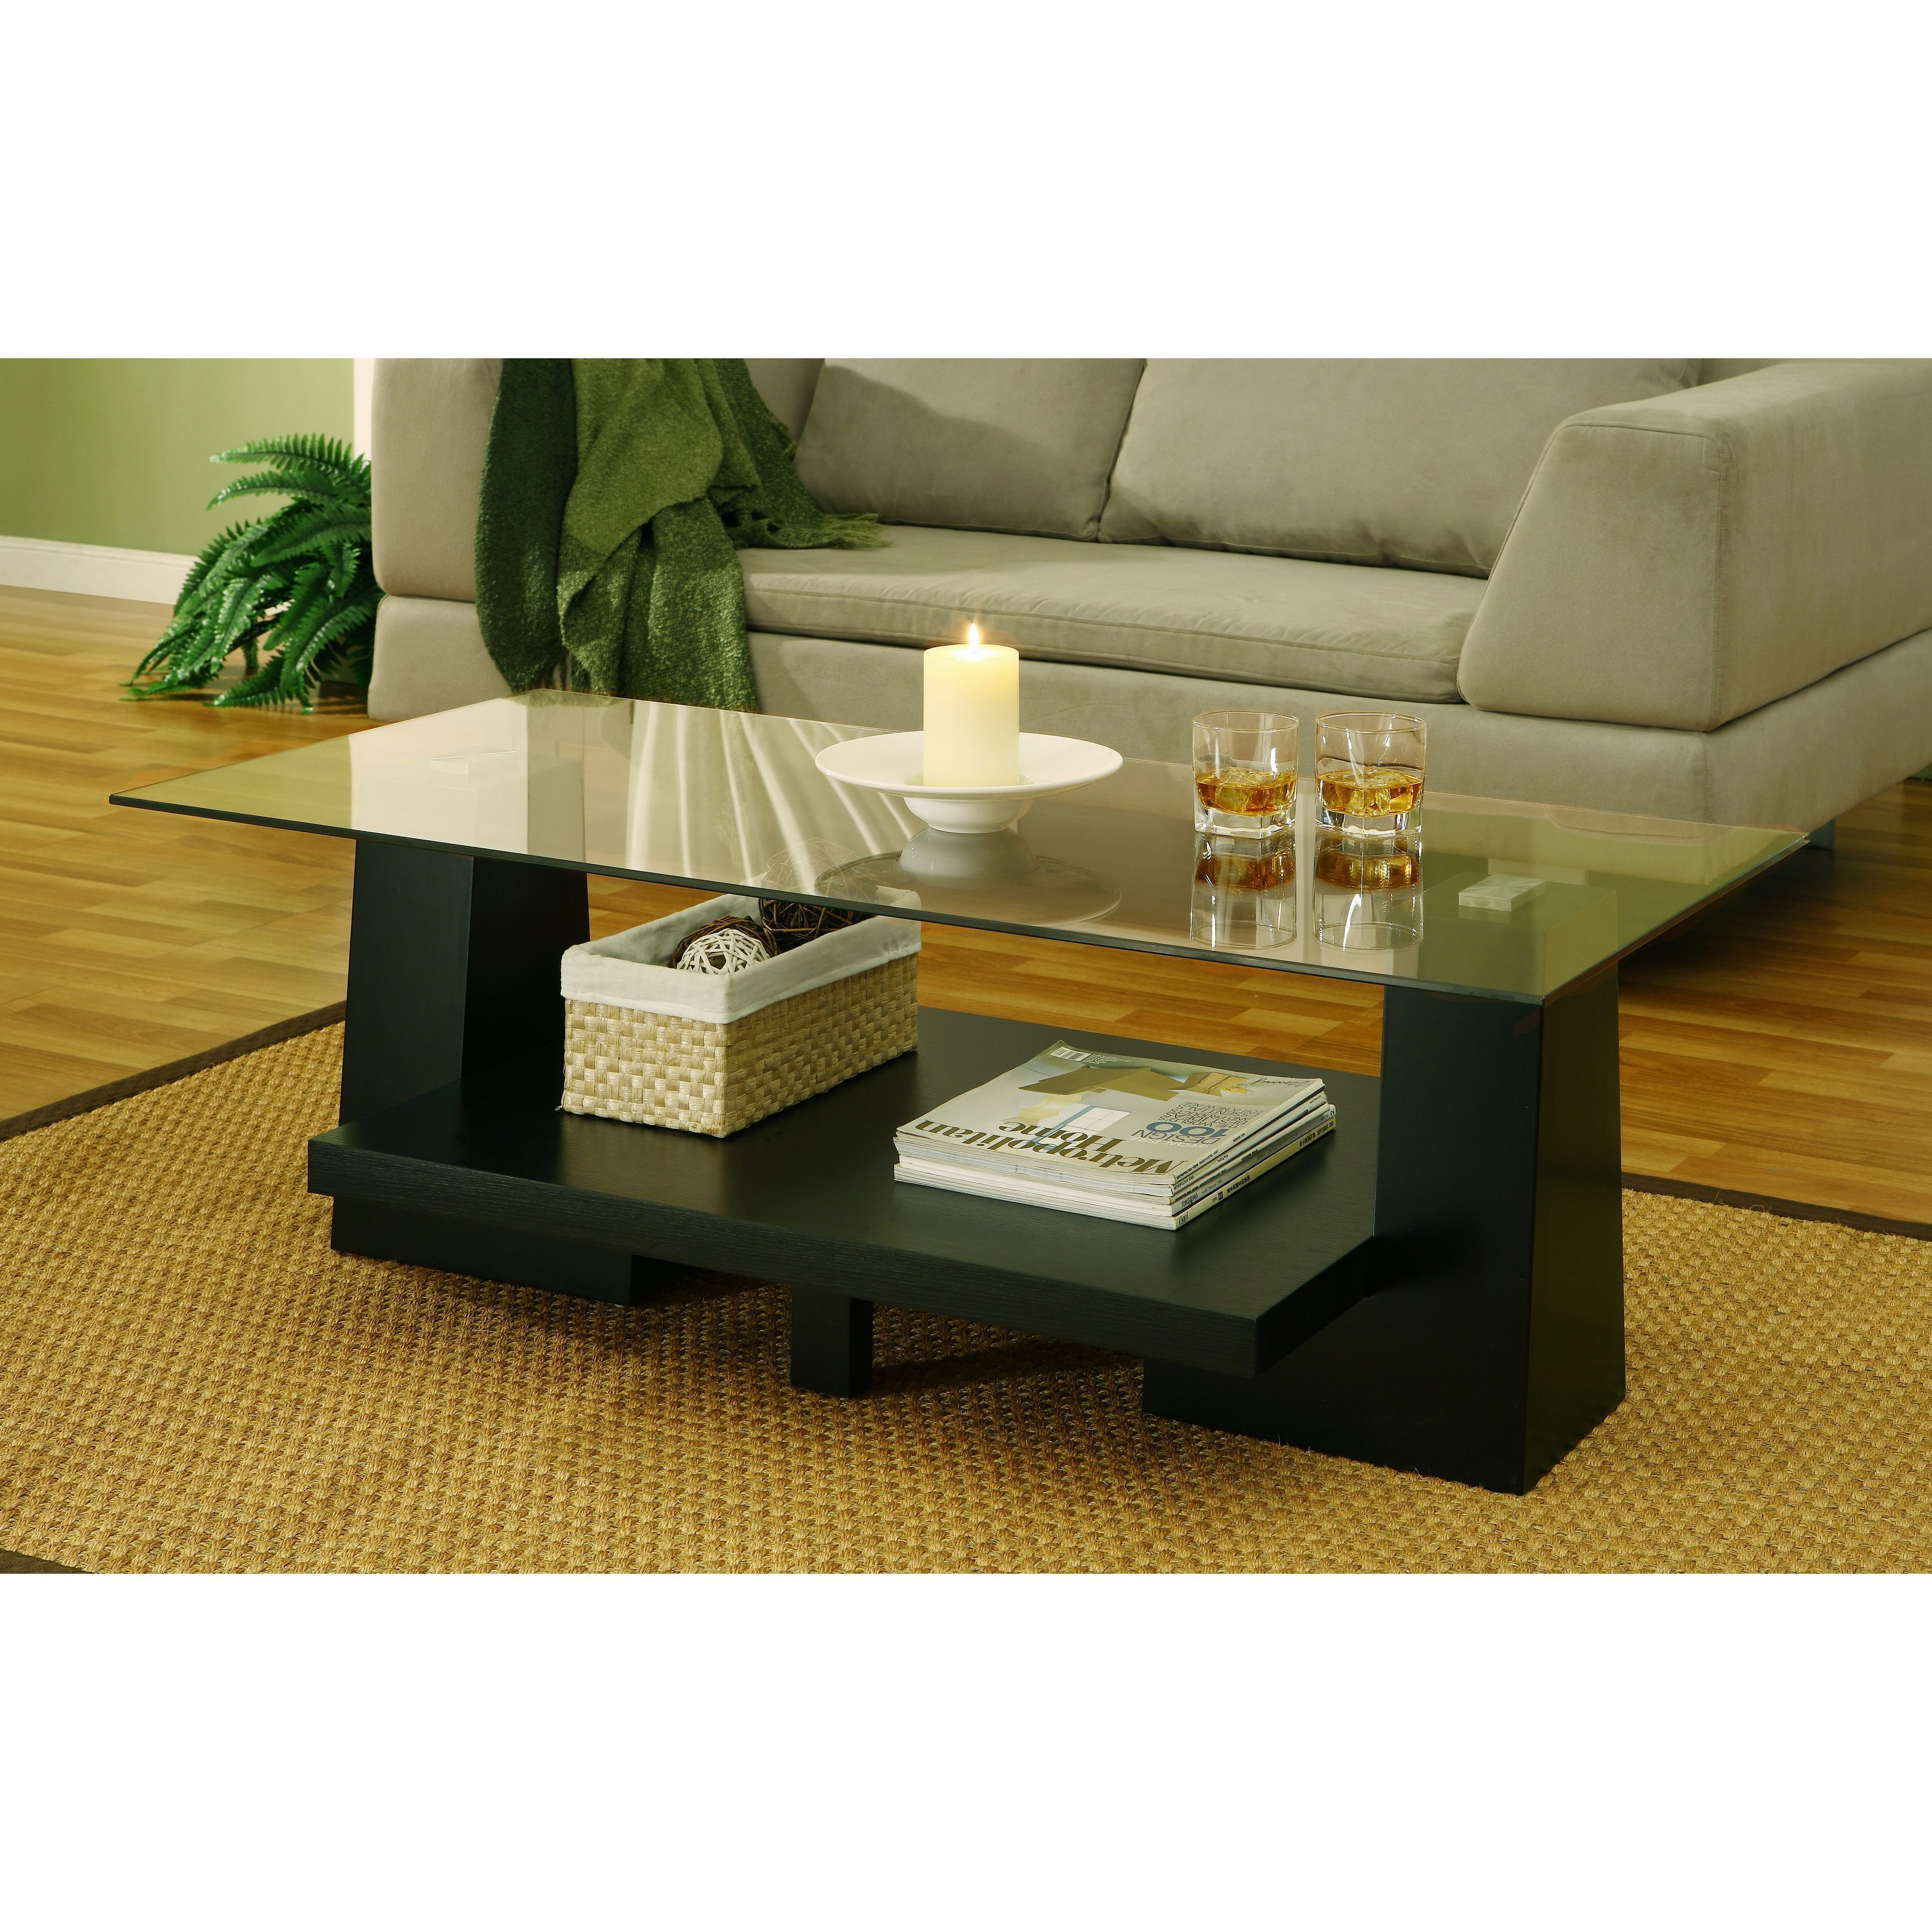 Online Shopping Bedding Furniture Electronics Jewelry Clothing More Living Room Coffee Table Glass Coffee Tables Living Room Sofa End Tables [ 3500 x 3500 Pixel ]